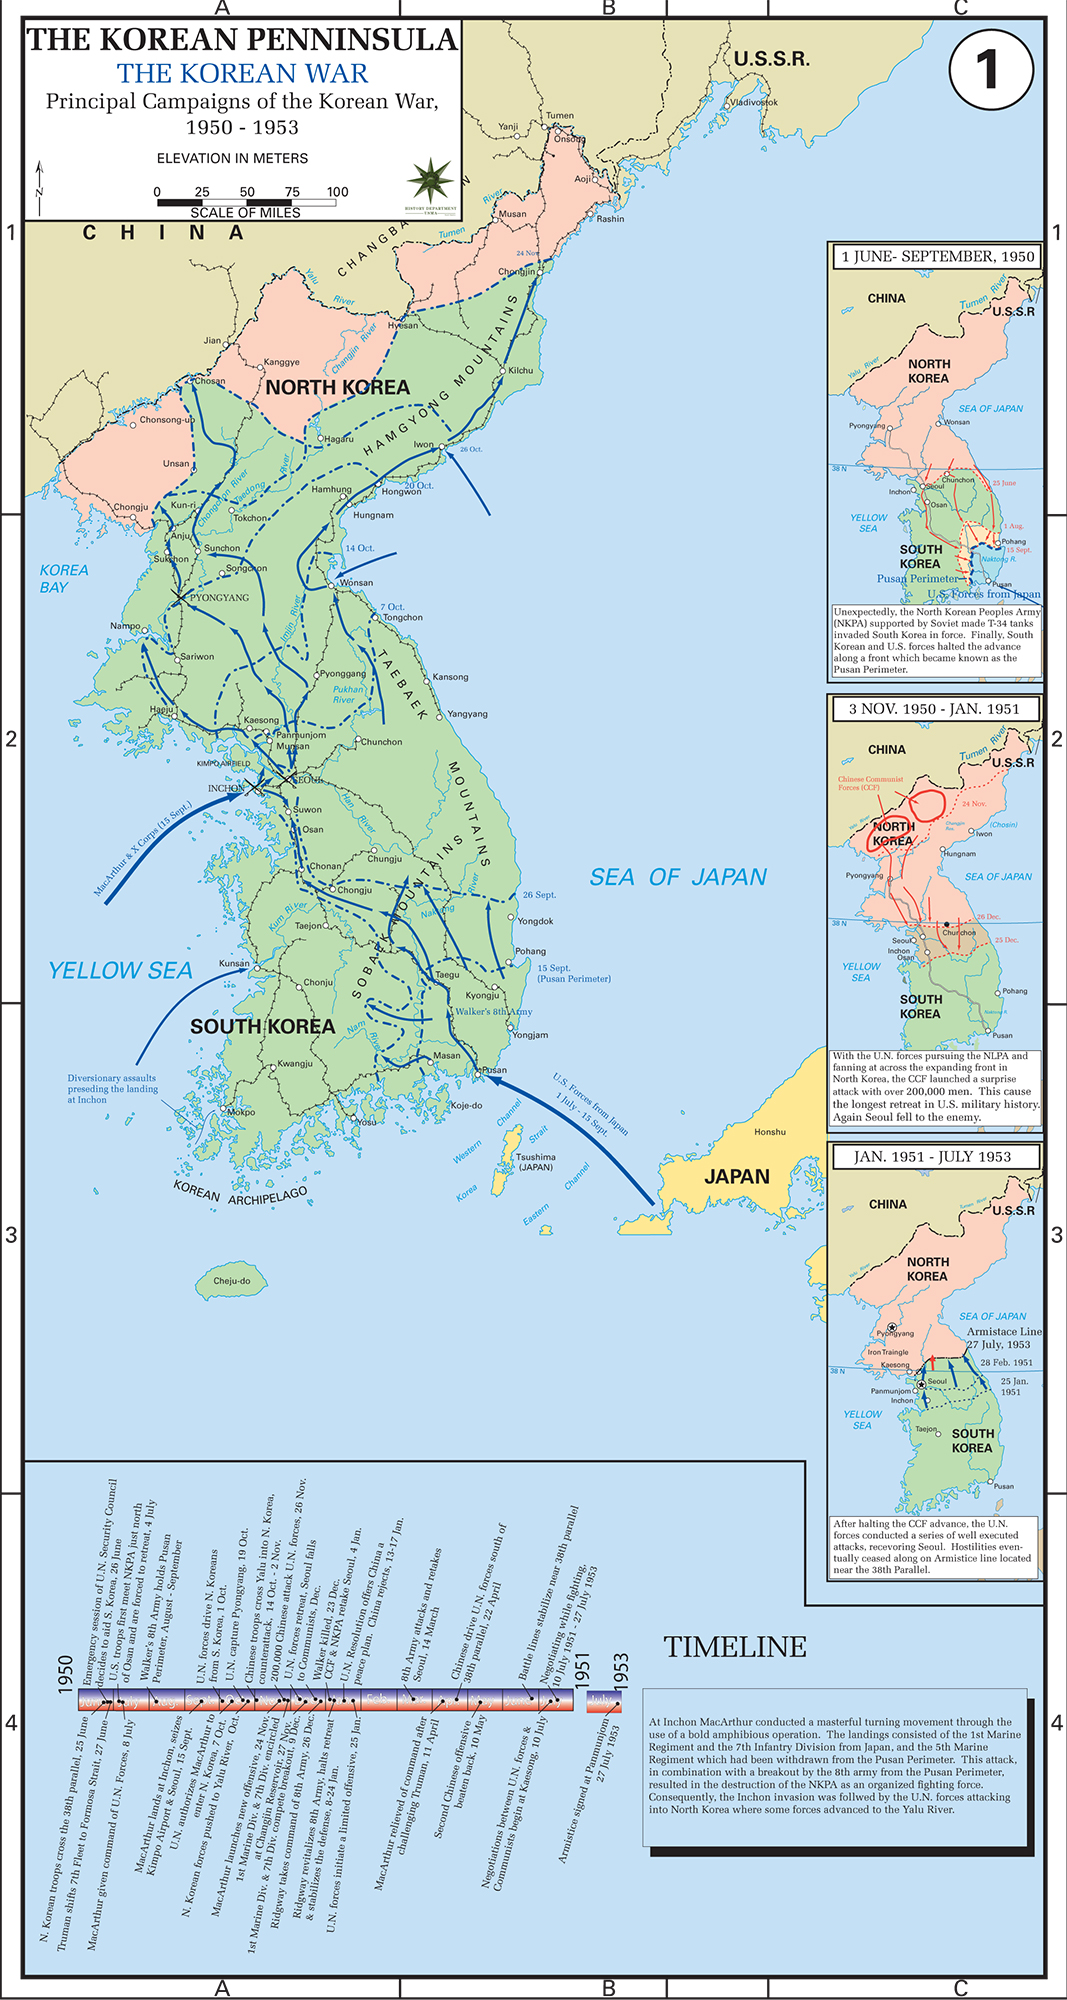 Map of the Korean War: Principal Campaigns 1950 - 1953.